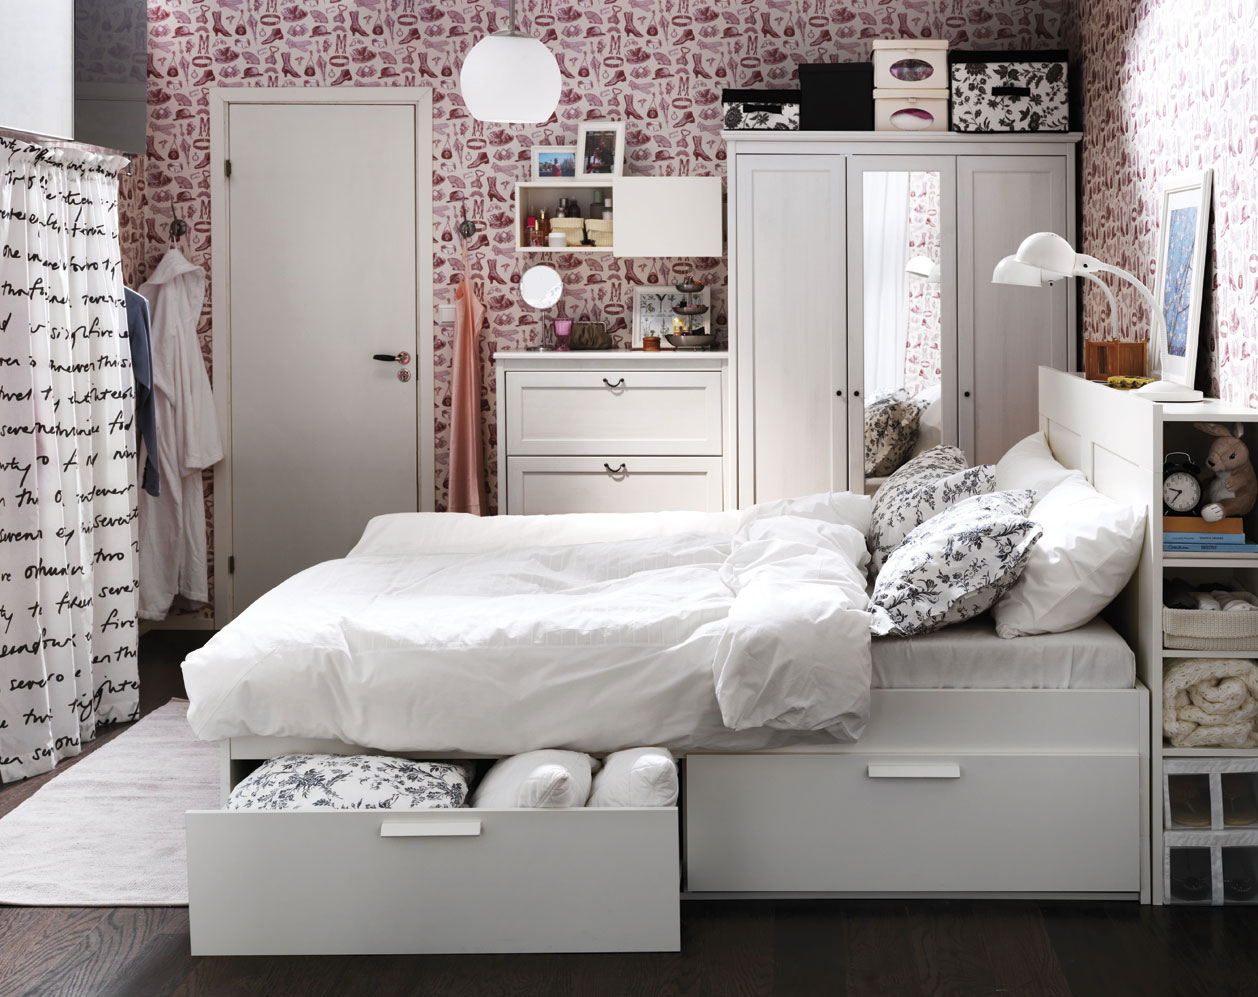 novedades ikea 2012 dormitorios im genes de ambientes con lo m s nuevo del cat logo. Black Bedroom Furniture Sets. Home Design Ideas